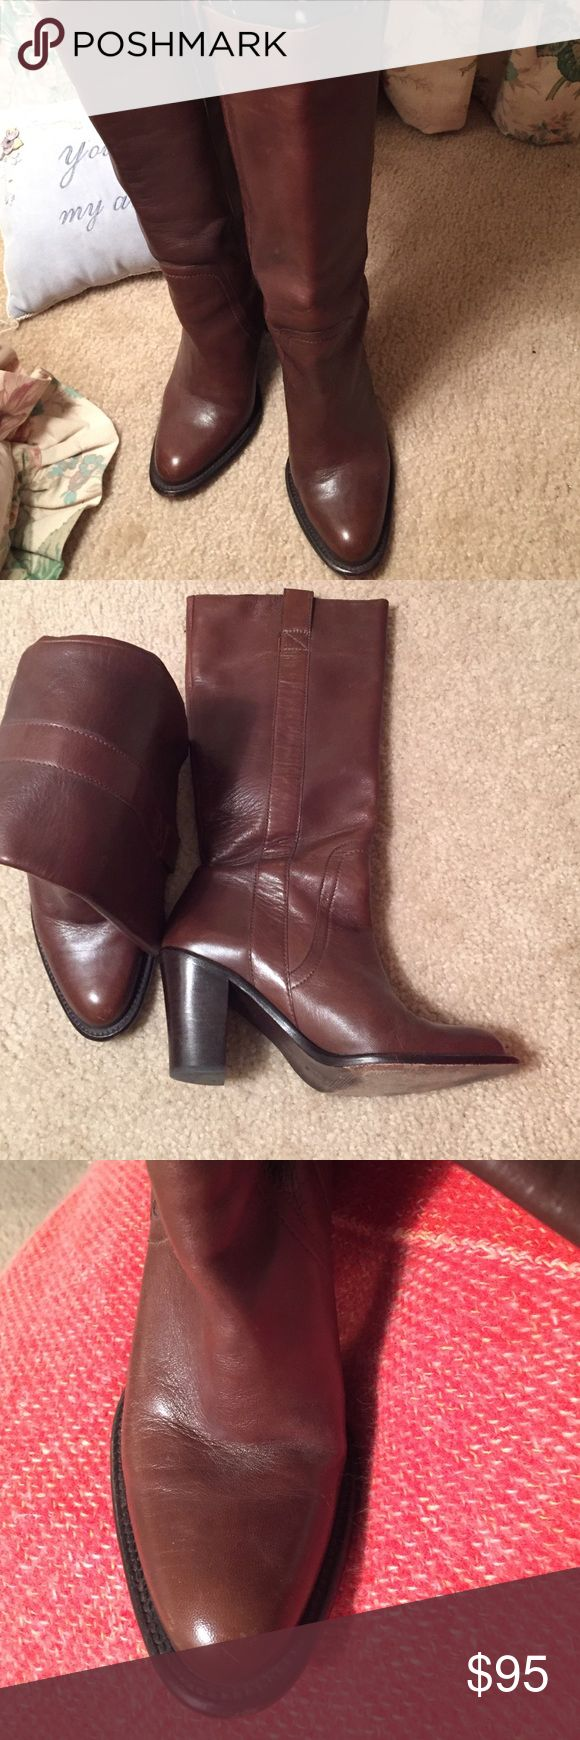 Banana Republic brown leather cowboy style boot Banana Republic brown leather cowboy style boot with pull up loops. All leather upper and sole. In fabulous condition. Banana Republic Shoes Heeled Boots